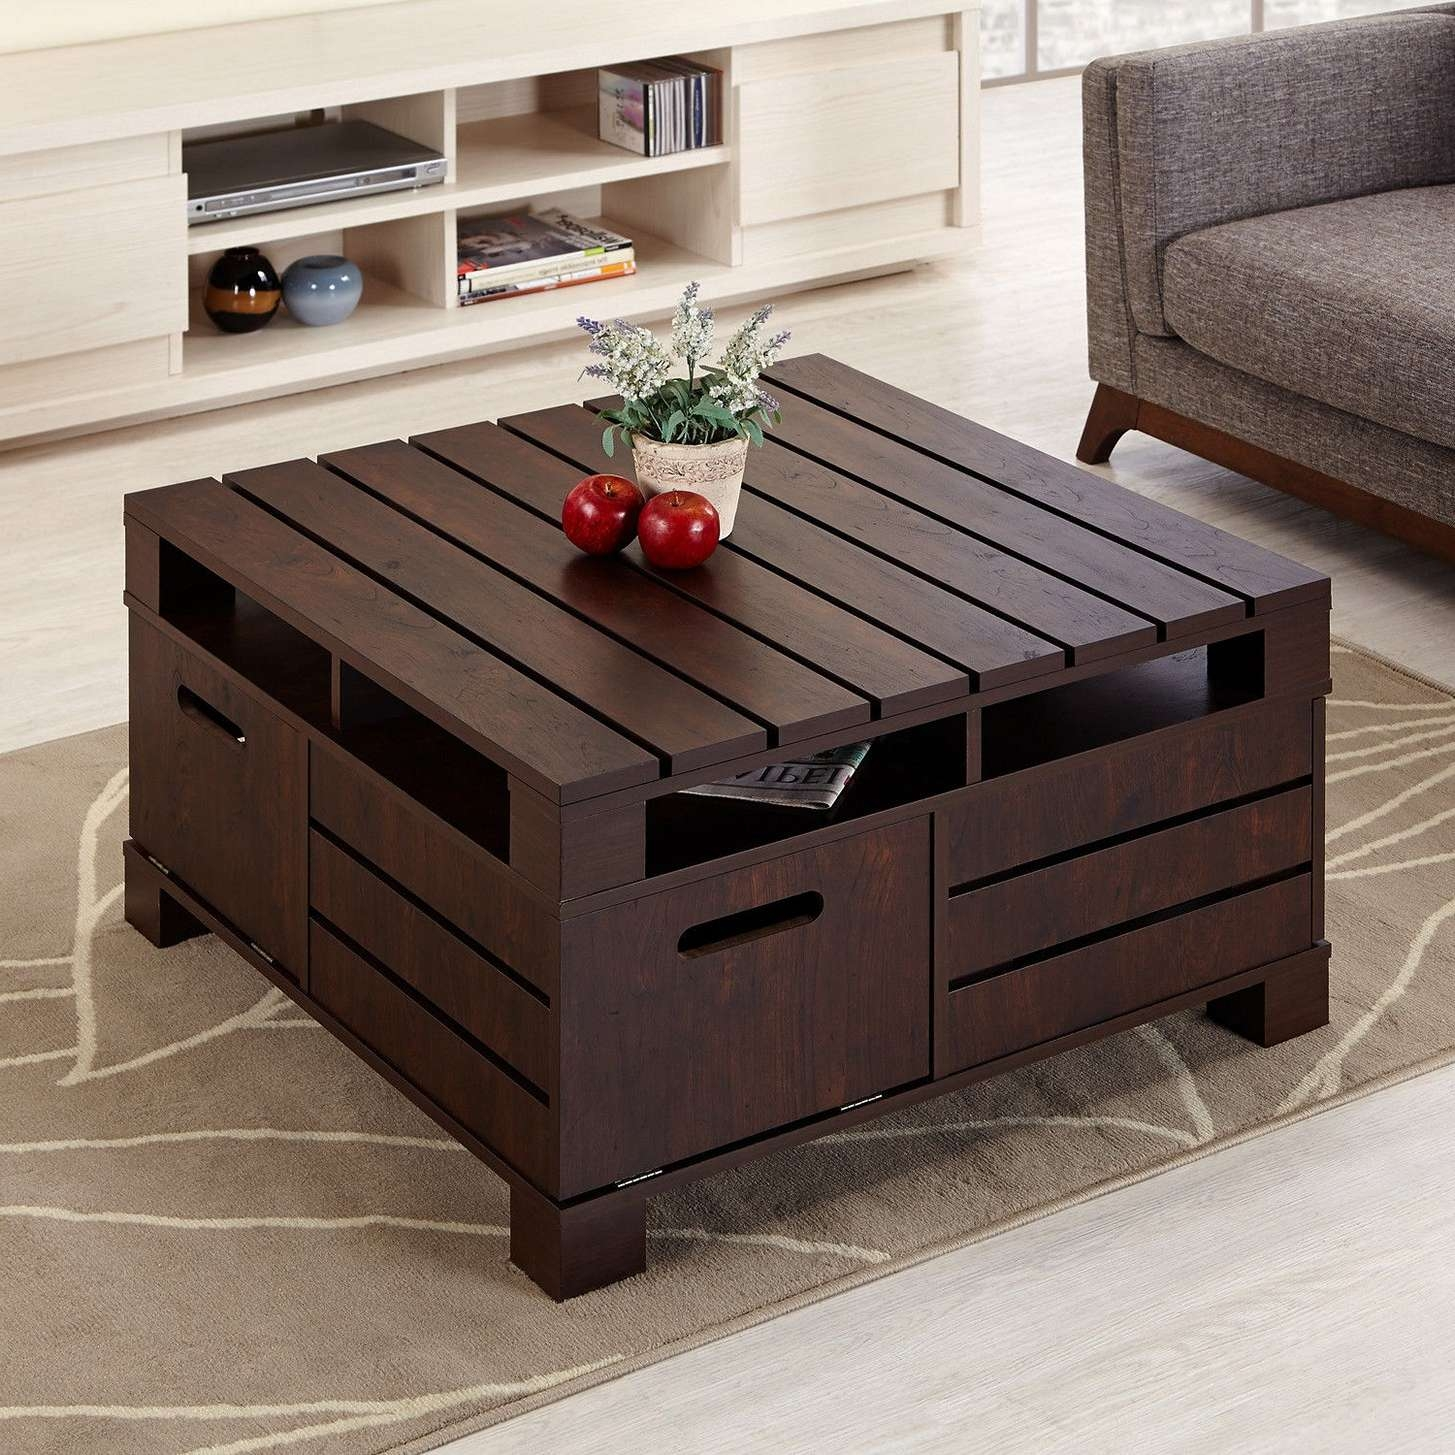 Coffee Tables : Diy Wood Pallet Coffee Table Design Plans Making Intended For Recent Rustic Storage Diy Coffee Tables (View 10 of 20)